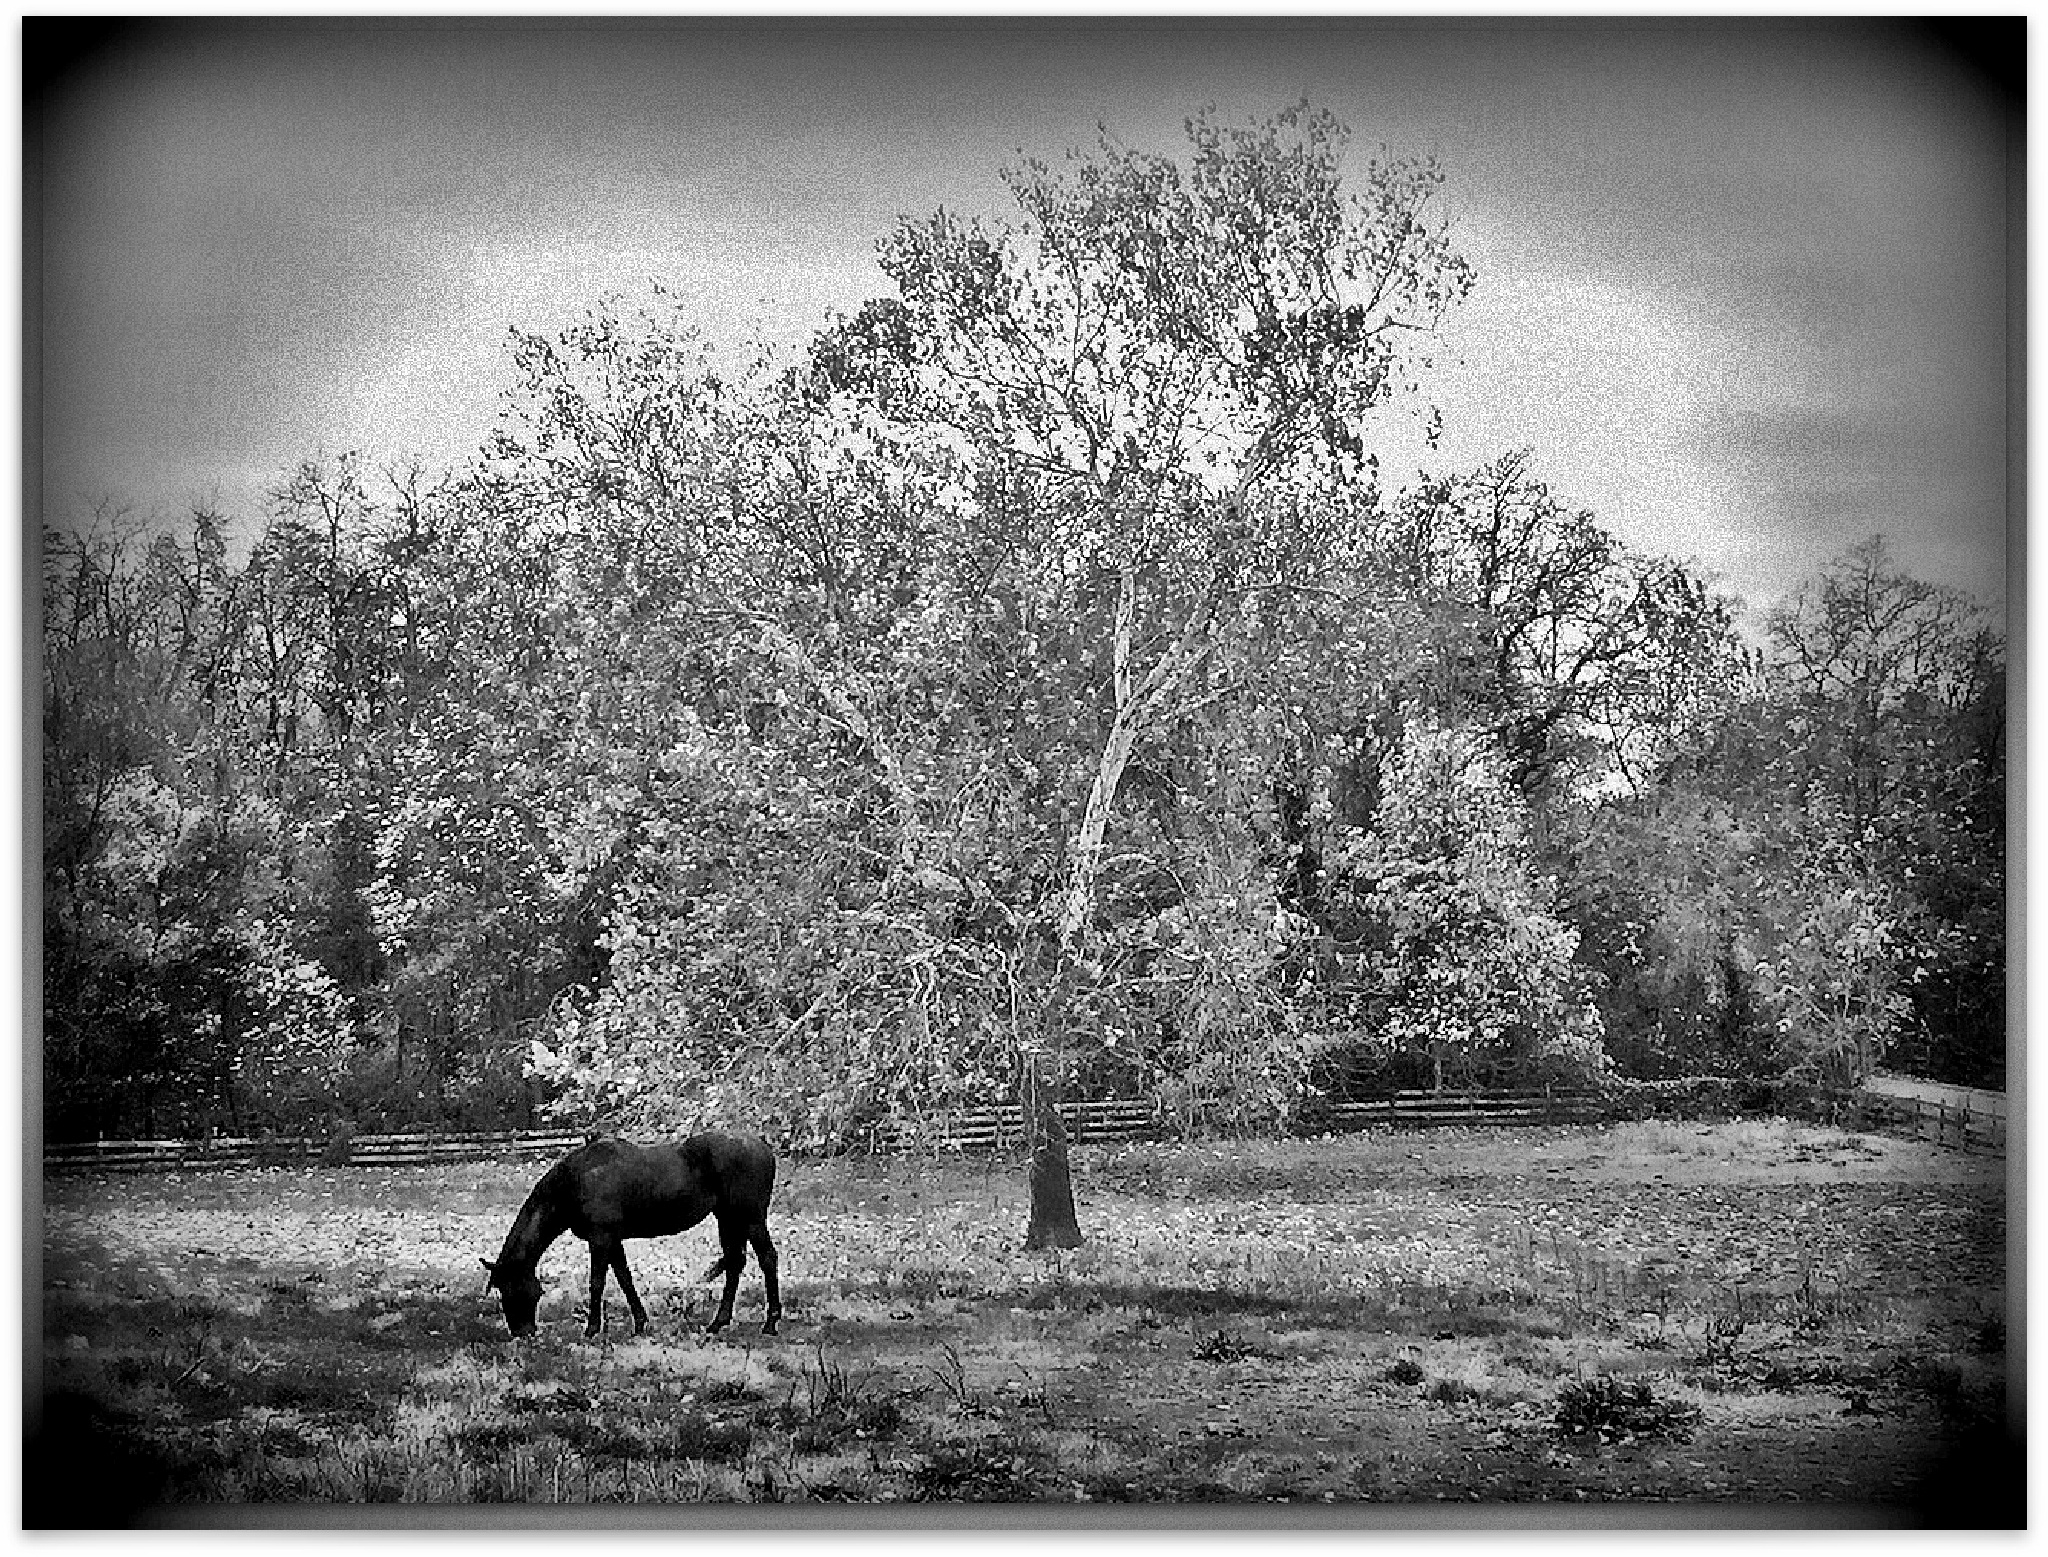 Horse in Black and White by DennyPaulPlatania